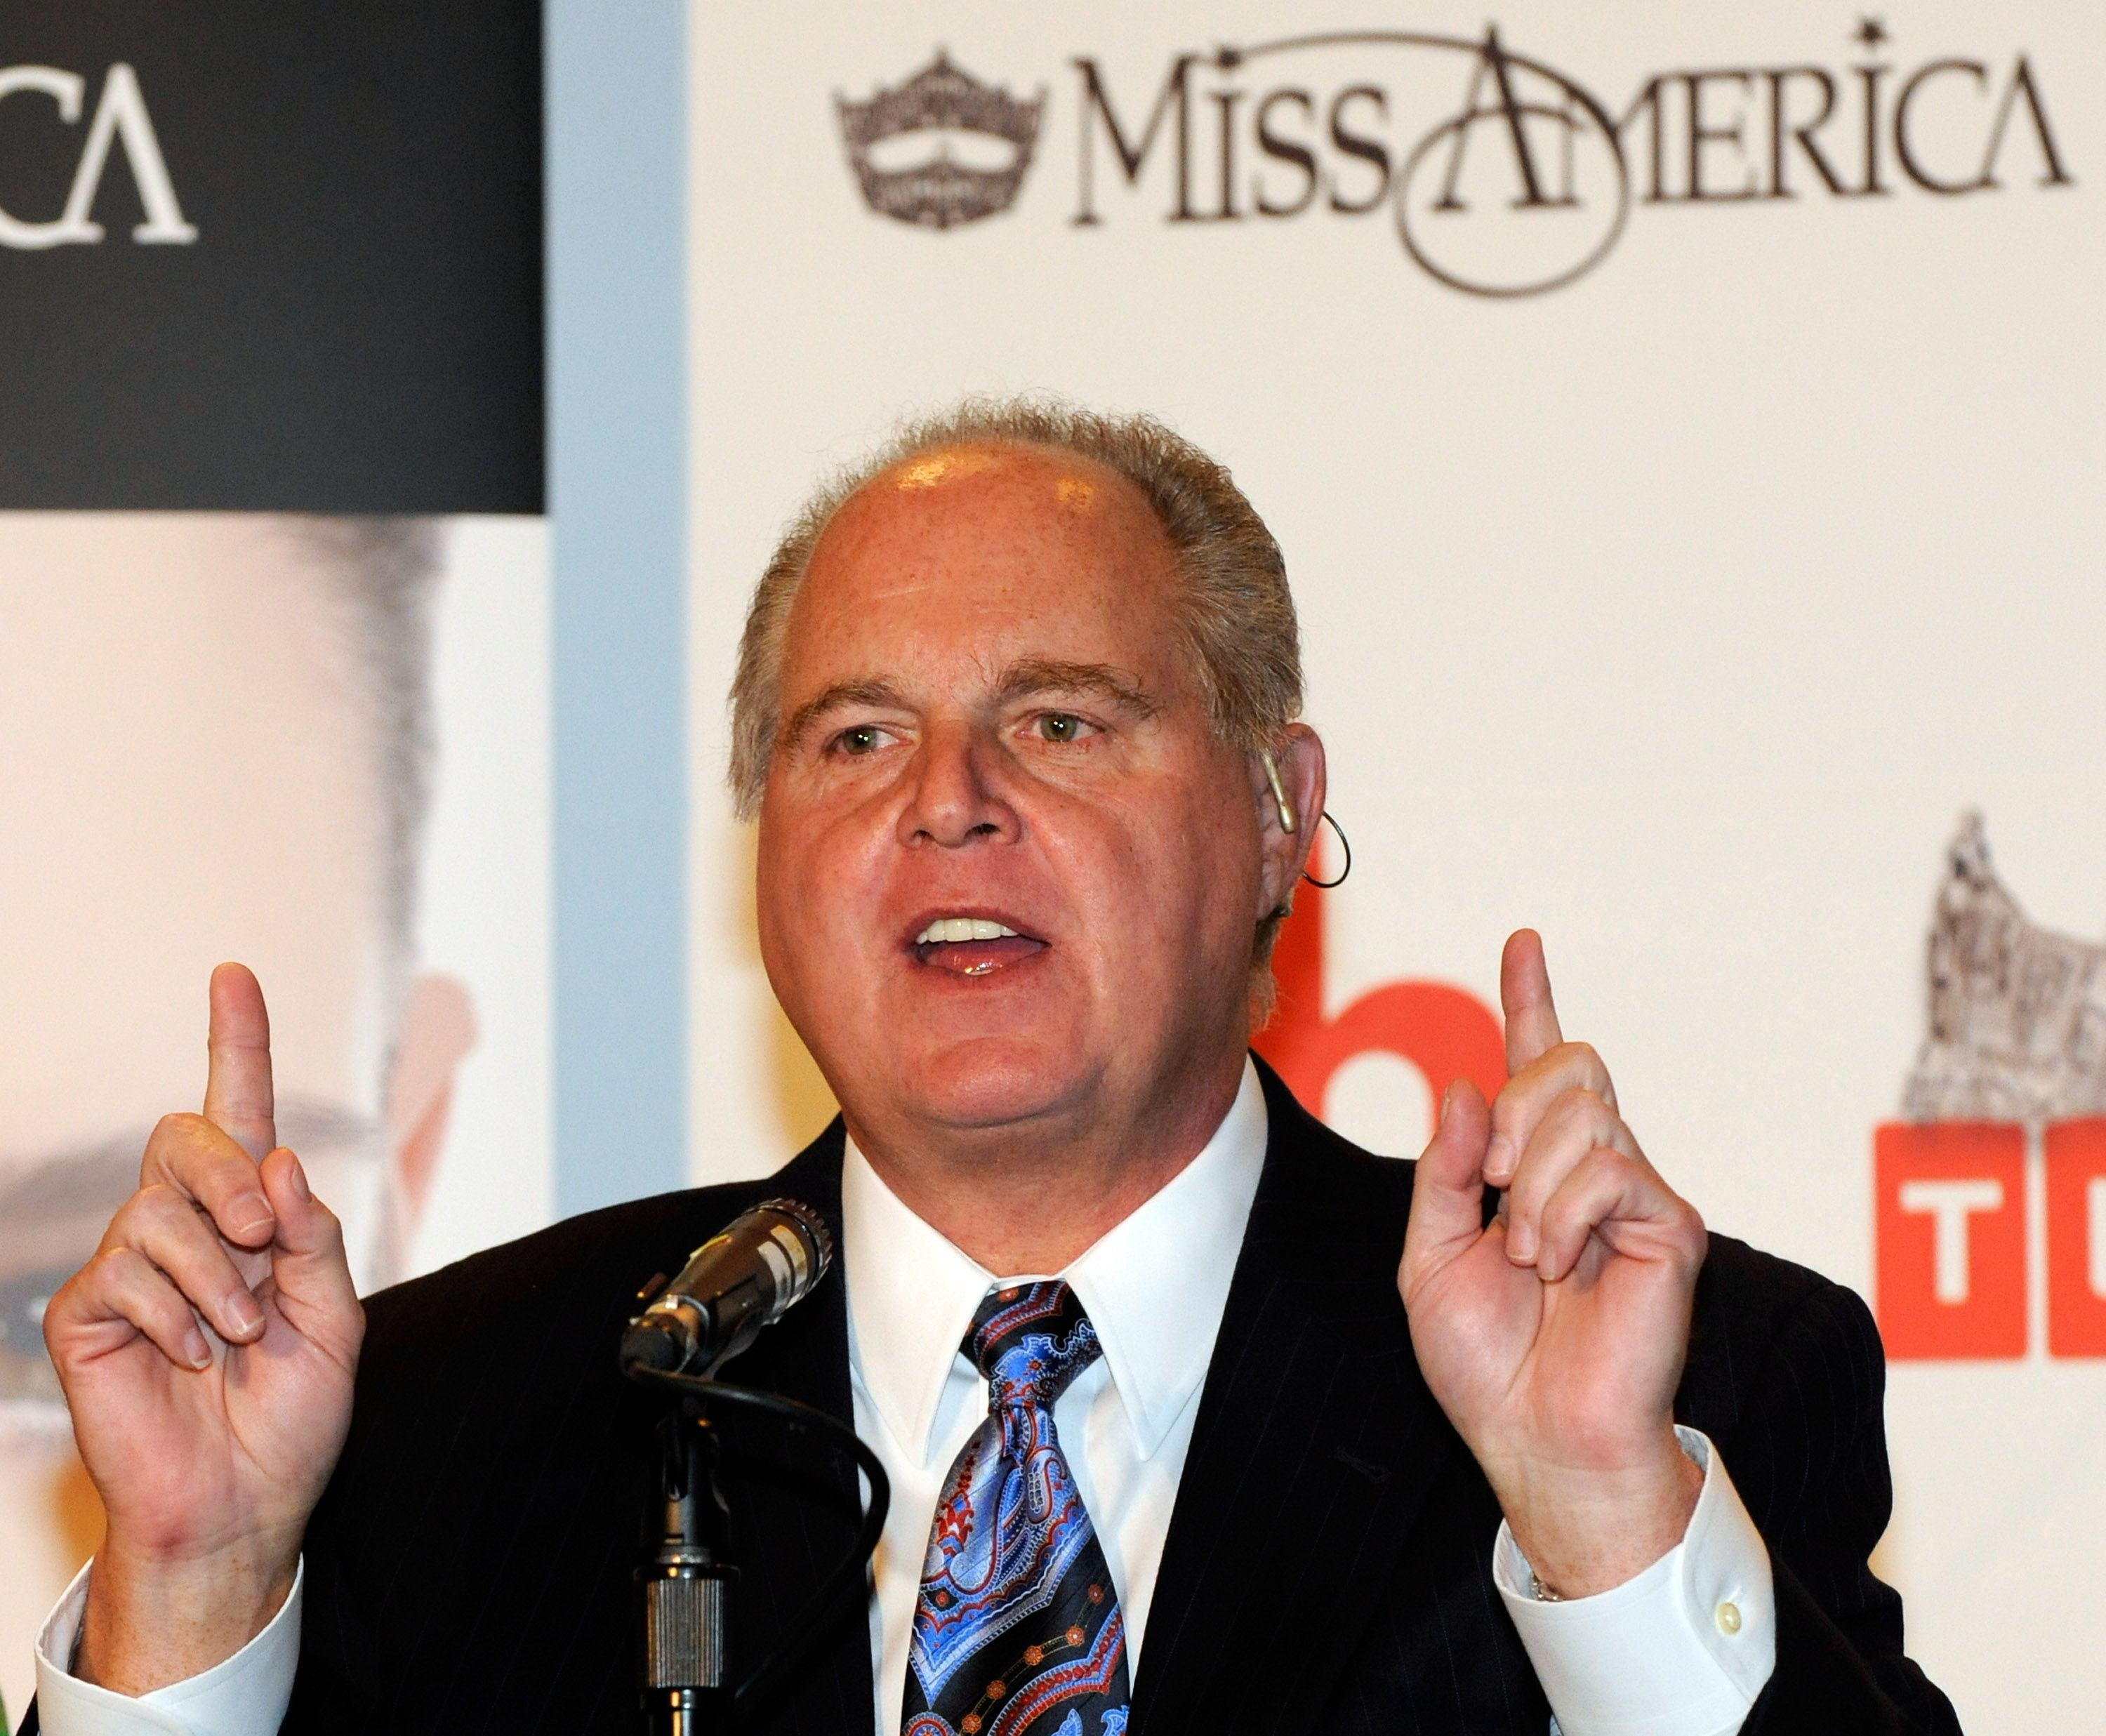 Rush Limbaugh during a news conference for Miss America Pageant judges on January 27, 2010, in Las Vegas, Nevada. | Source: Getty Images